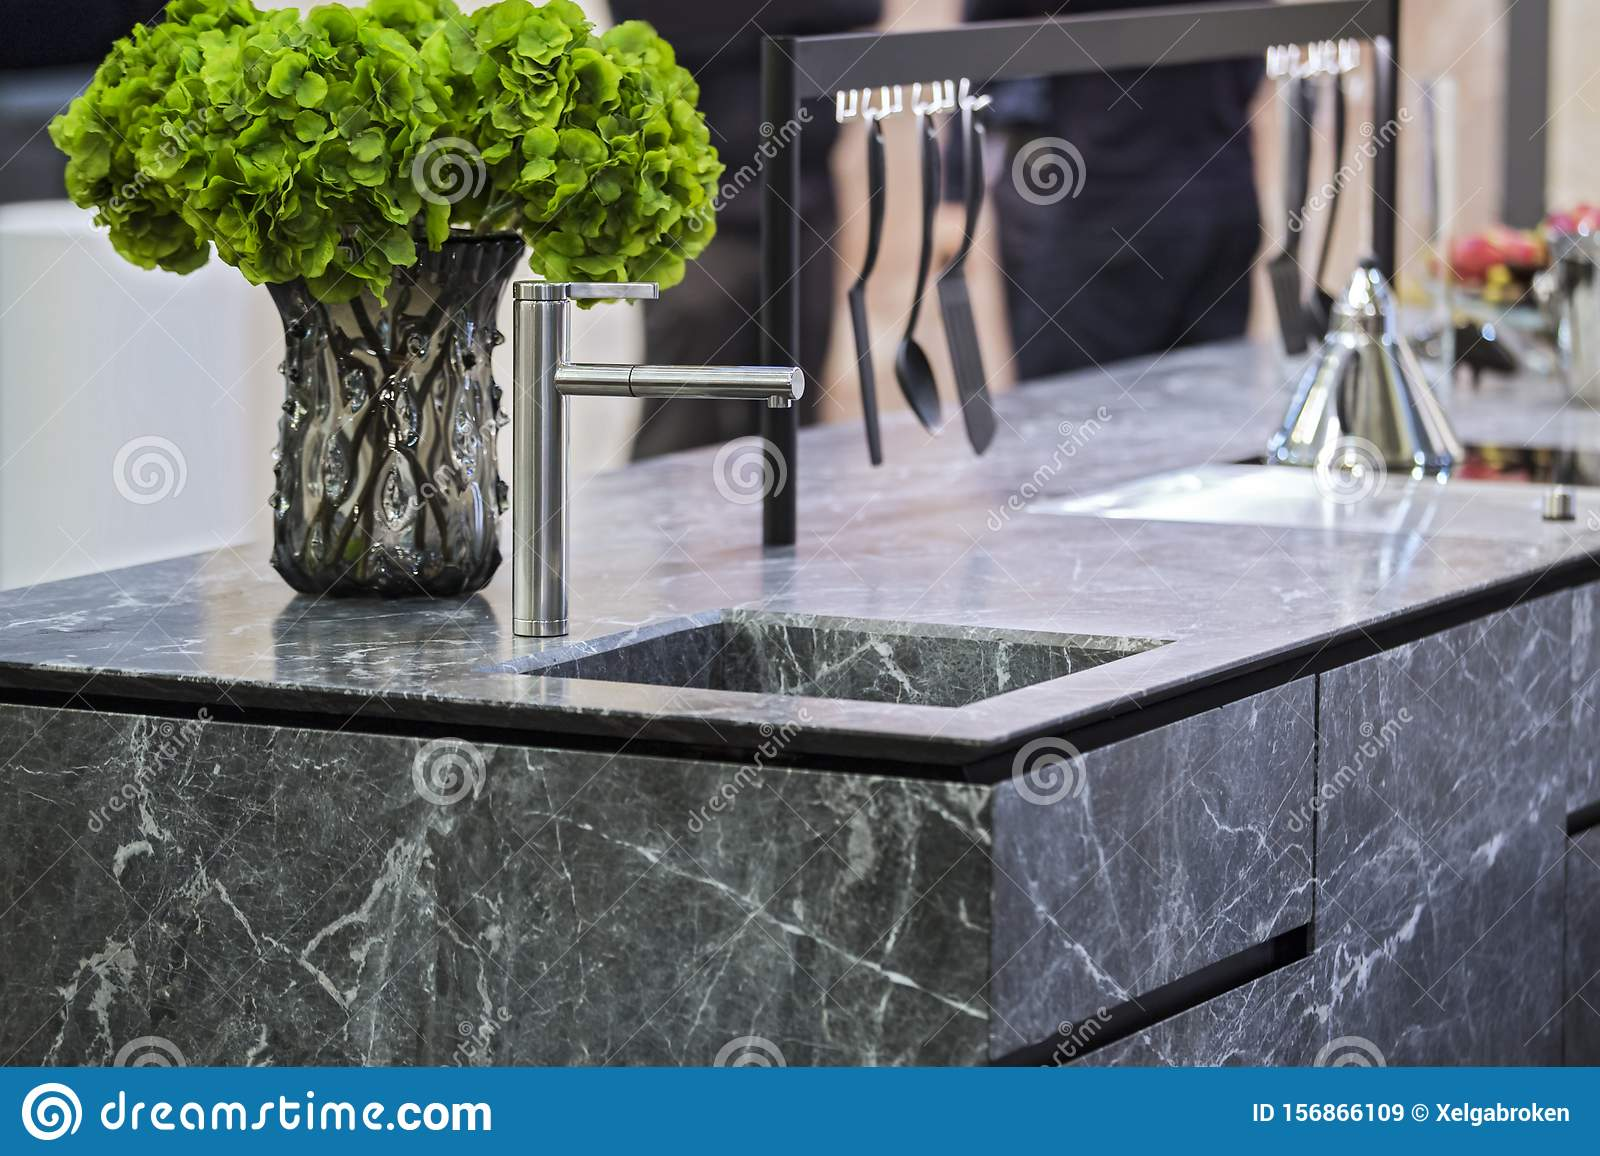 Beautiful Modern Kitchen Design Kitchen Faucet And Kitchen Decor Gray Marble Kitchen Island Stock Image Image Of Contemporary House 156866109